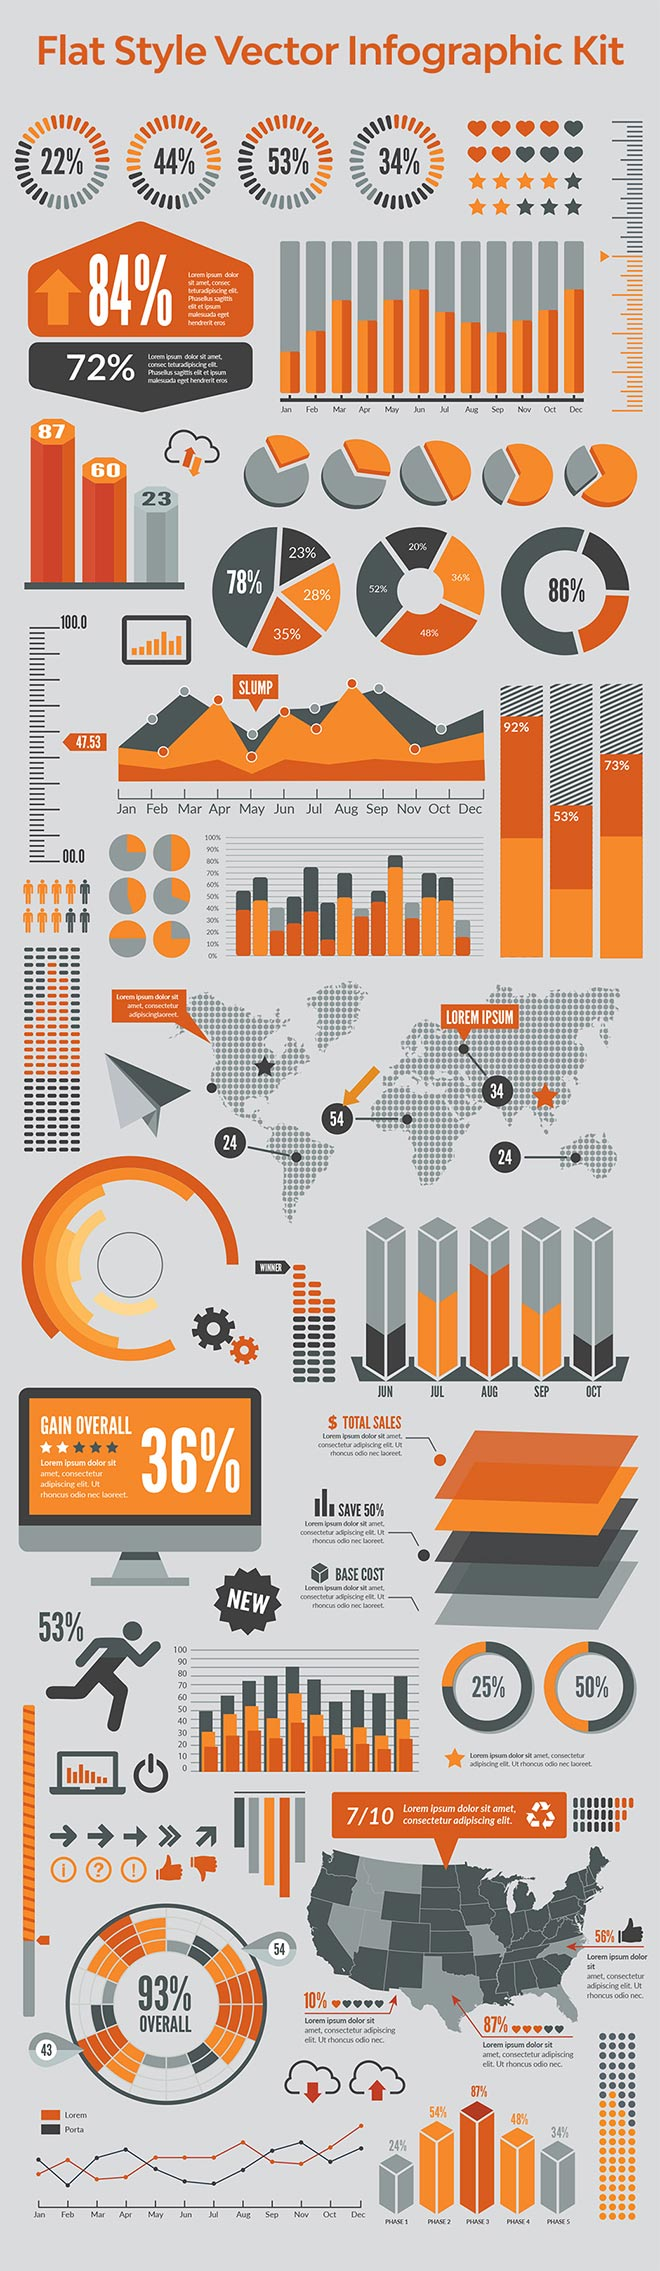 Flat Style Vector Infographic Kit